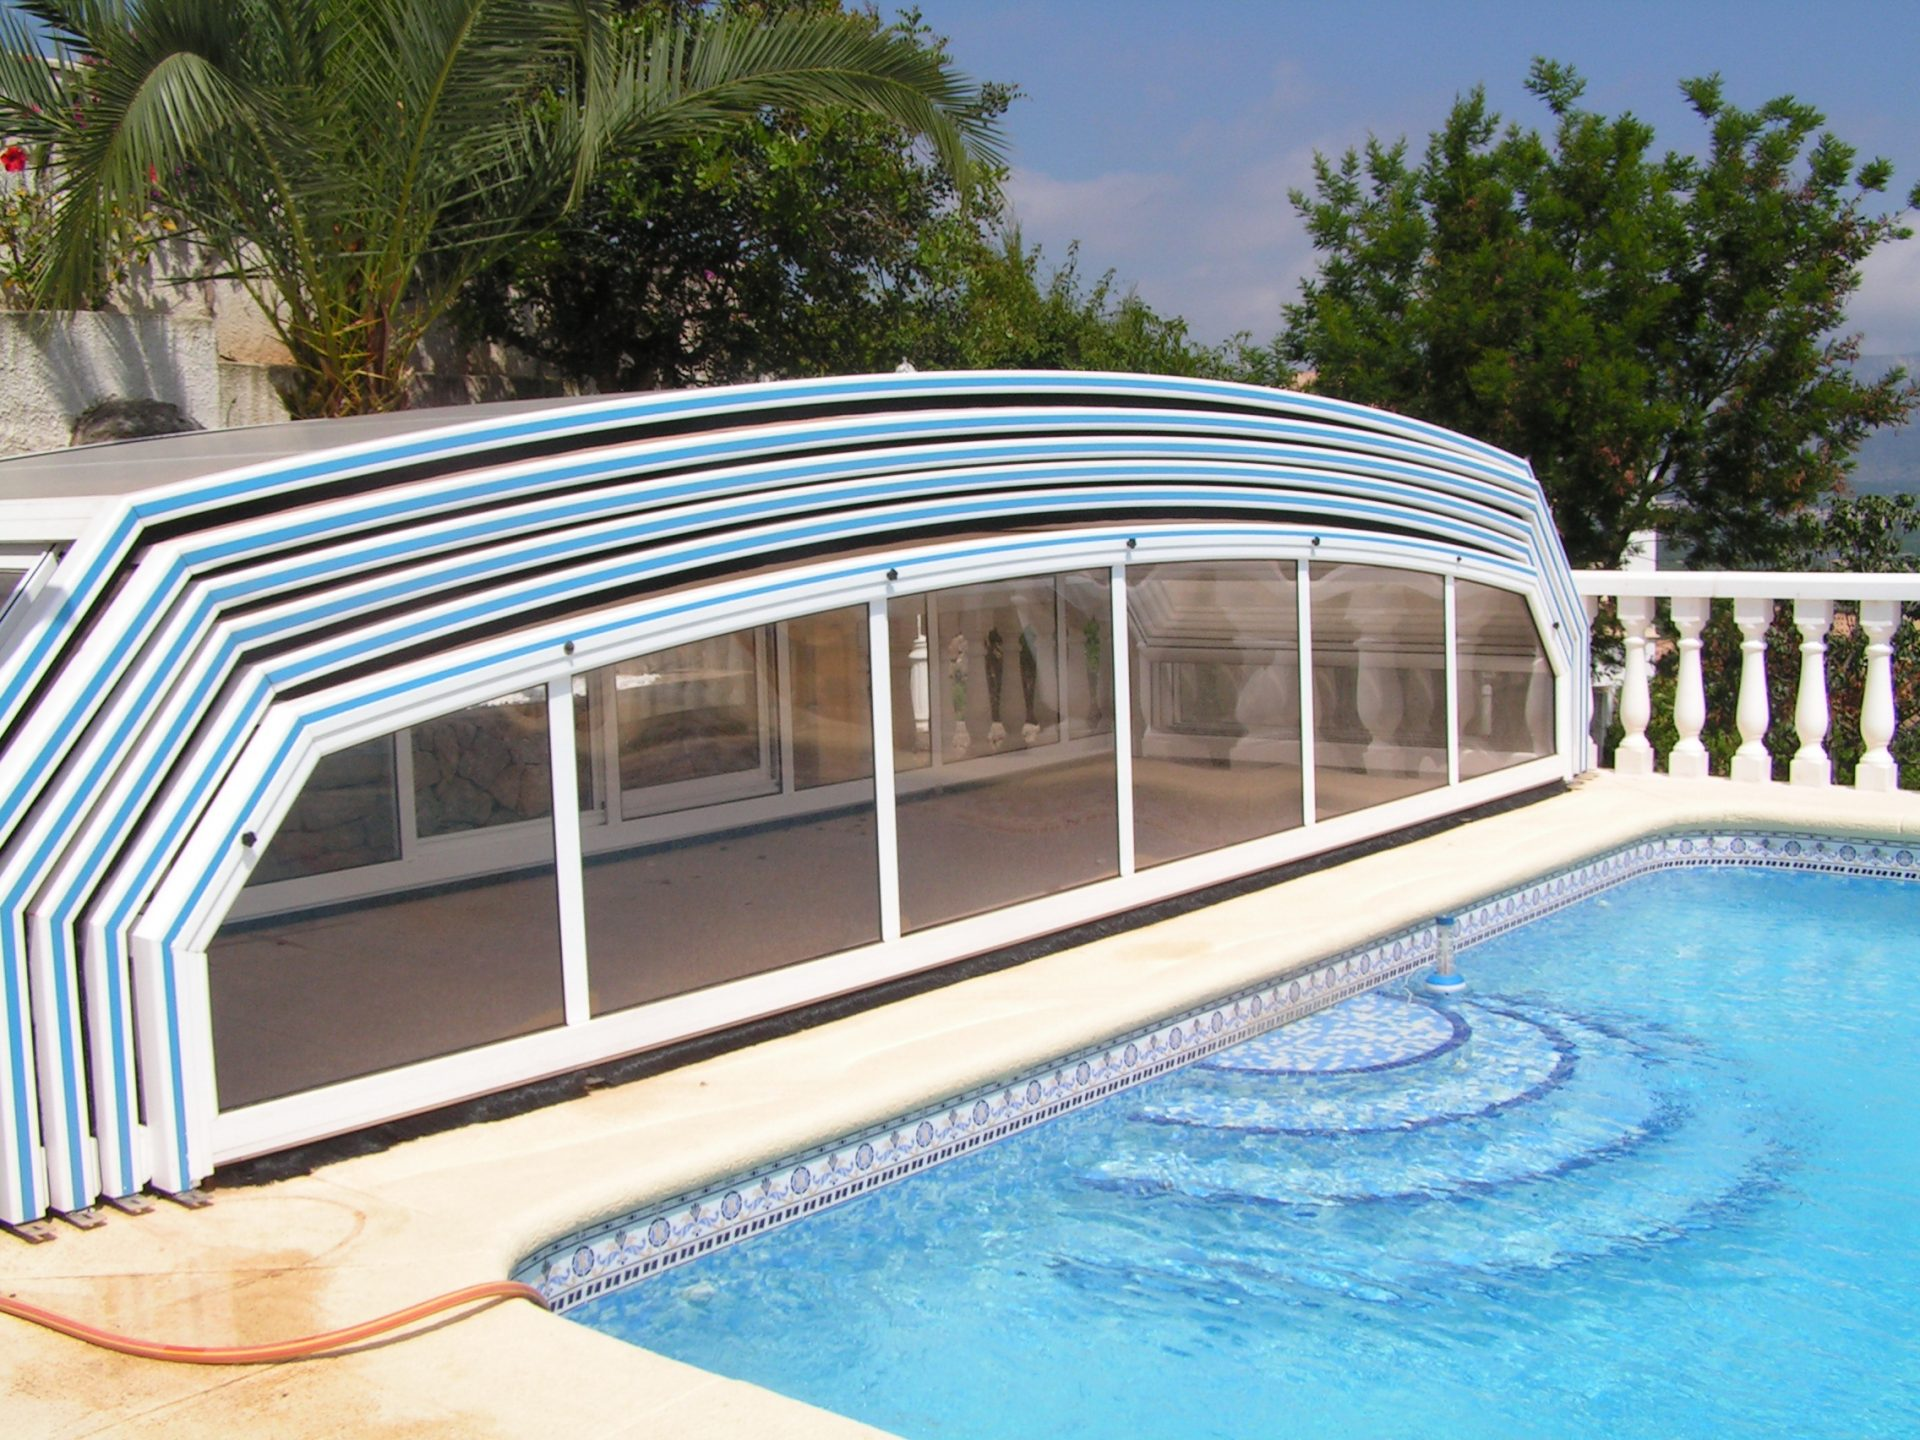 Abri piscine paris t lescopique sur roulette for Bequille abri piscine